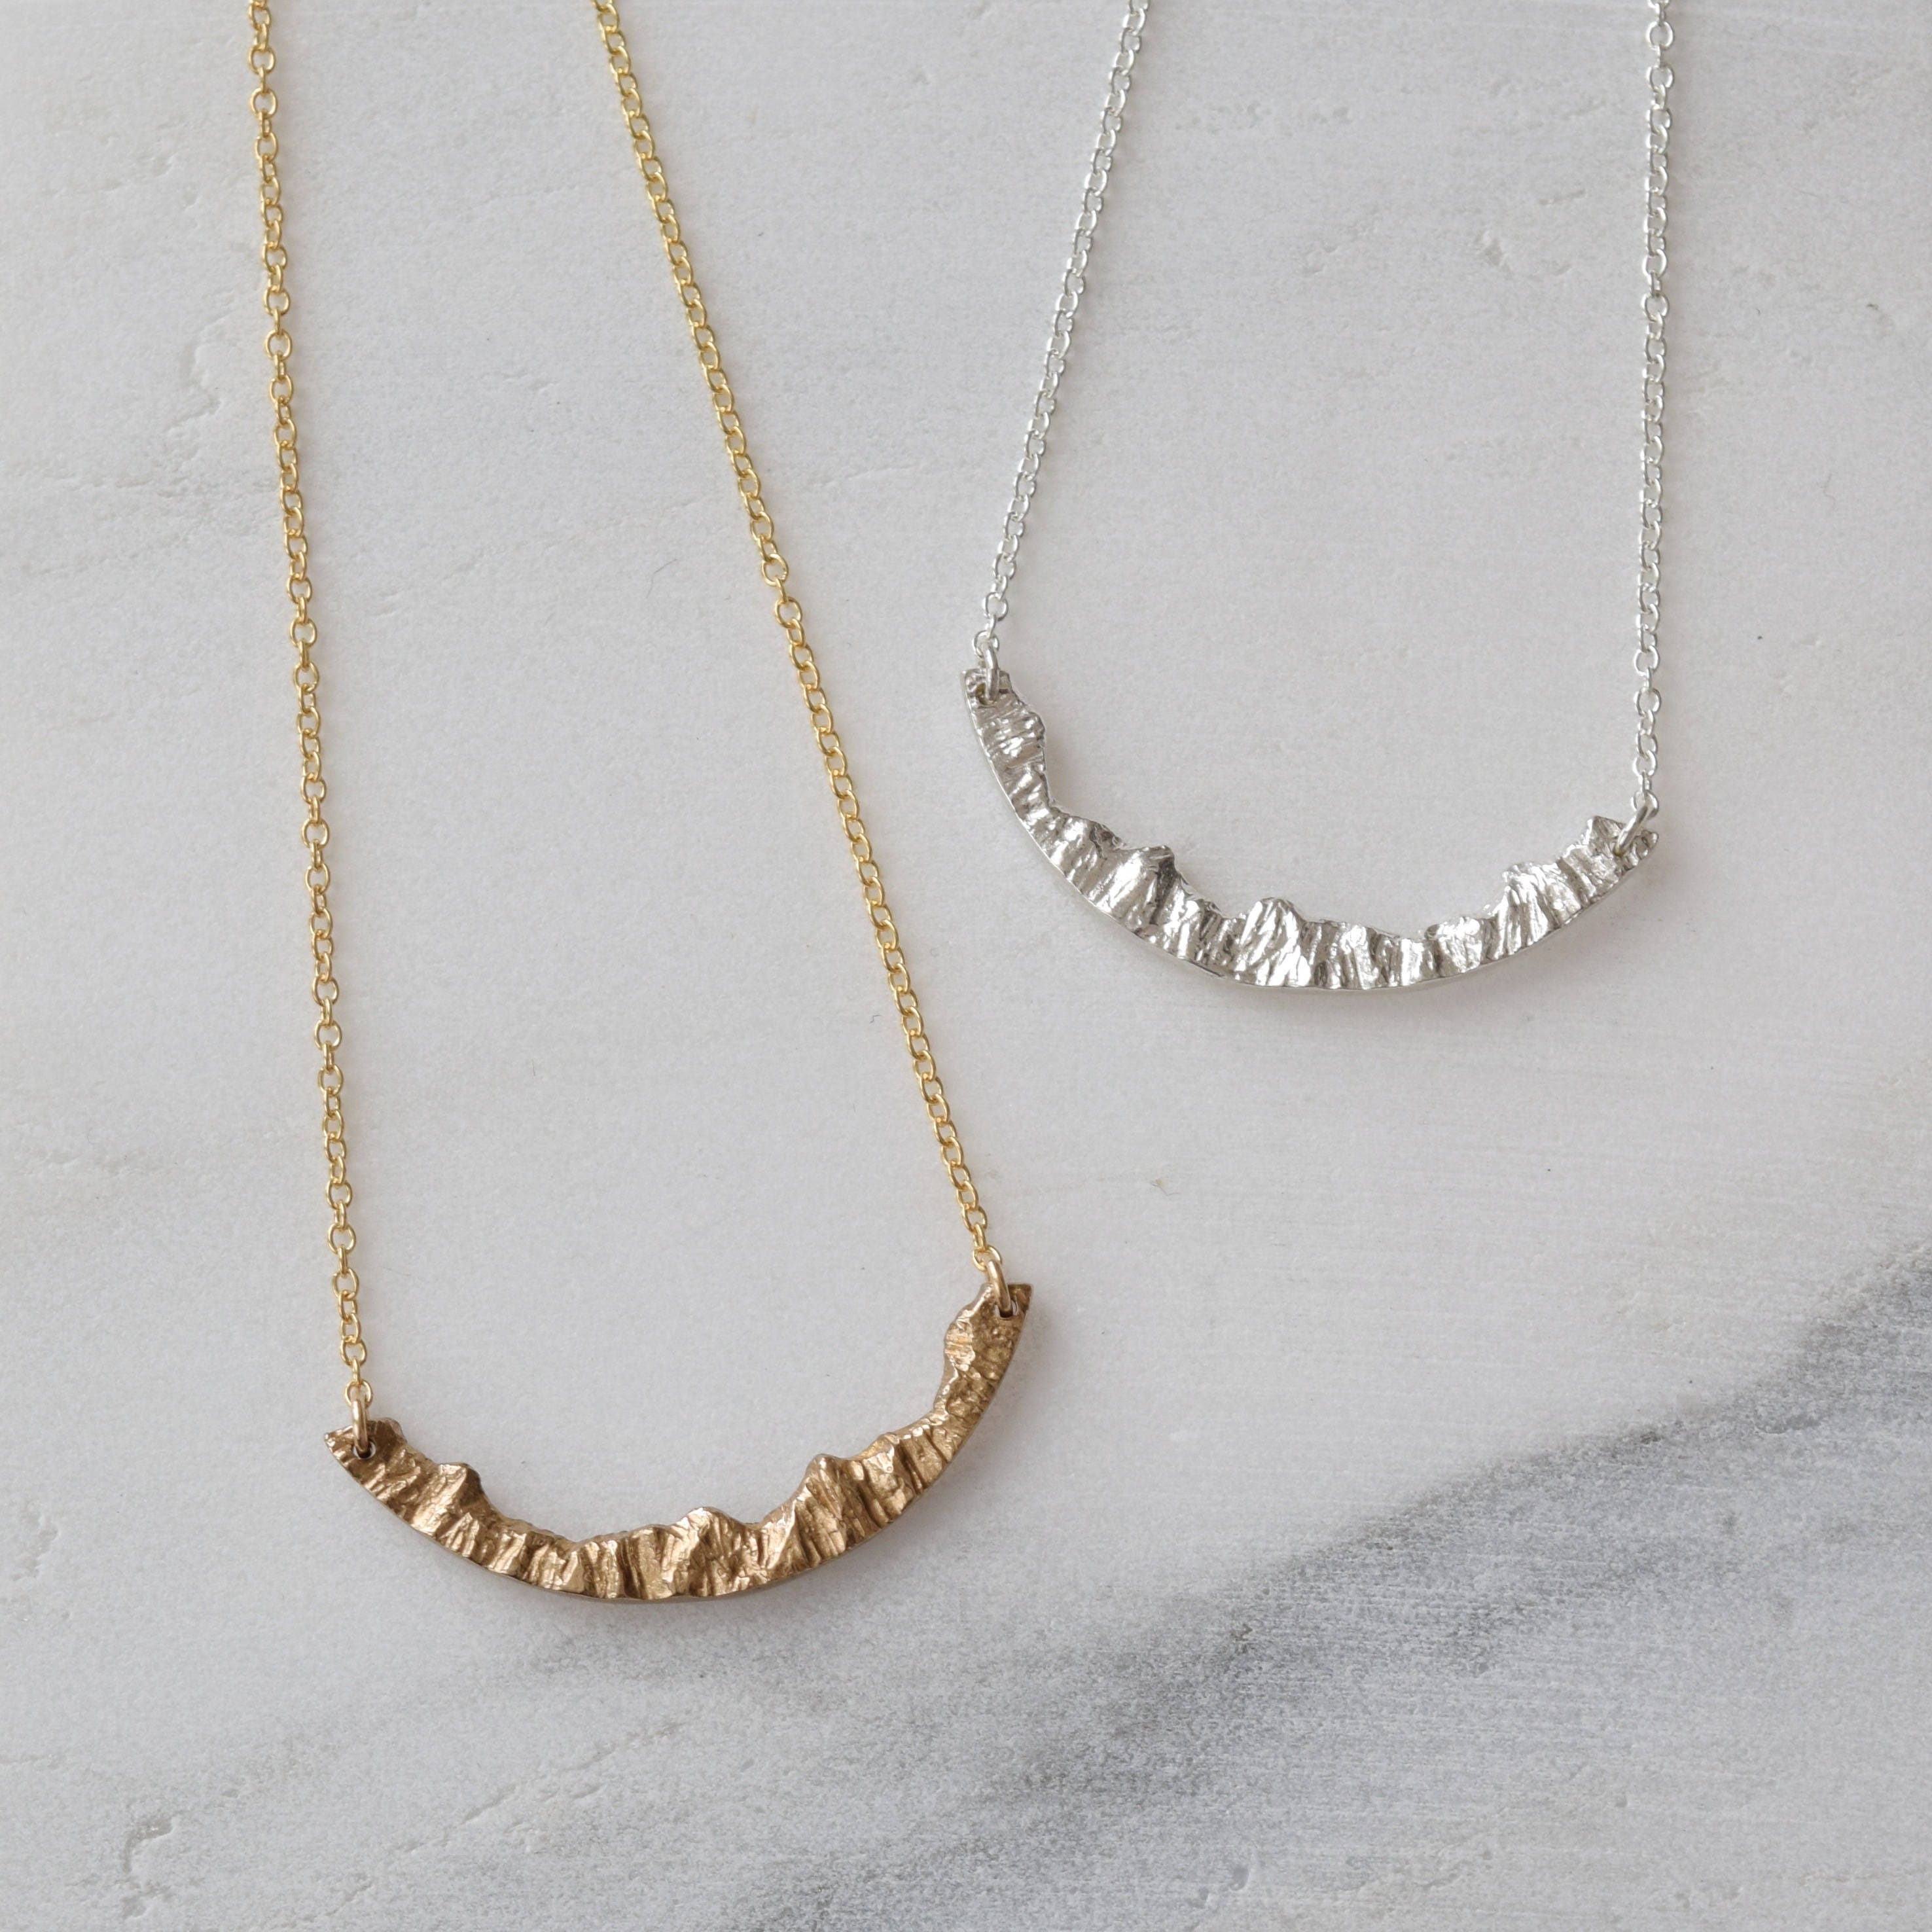 mountain necklace silver nature necklace travel necklace. Black Bedroom Furniture Sets. Home Design Ideas